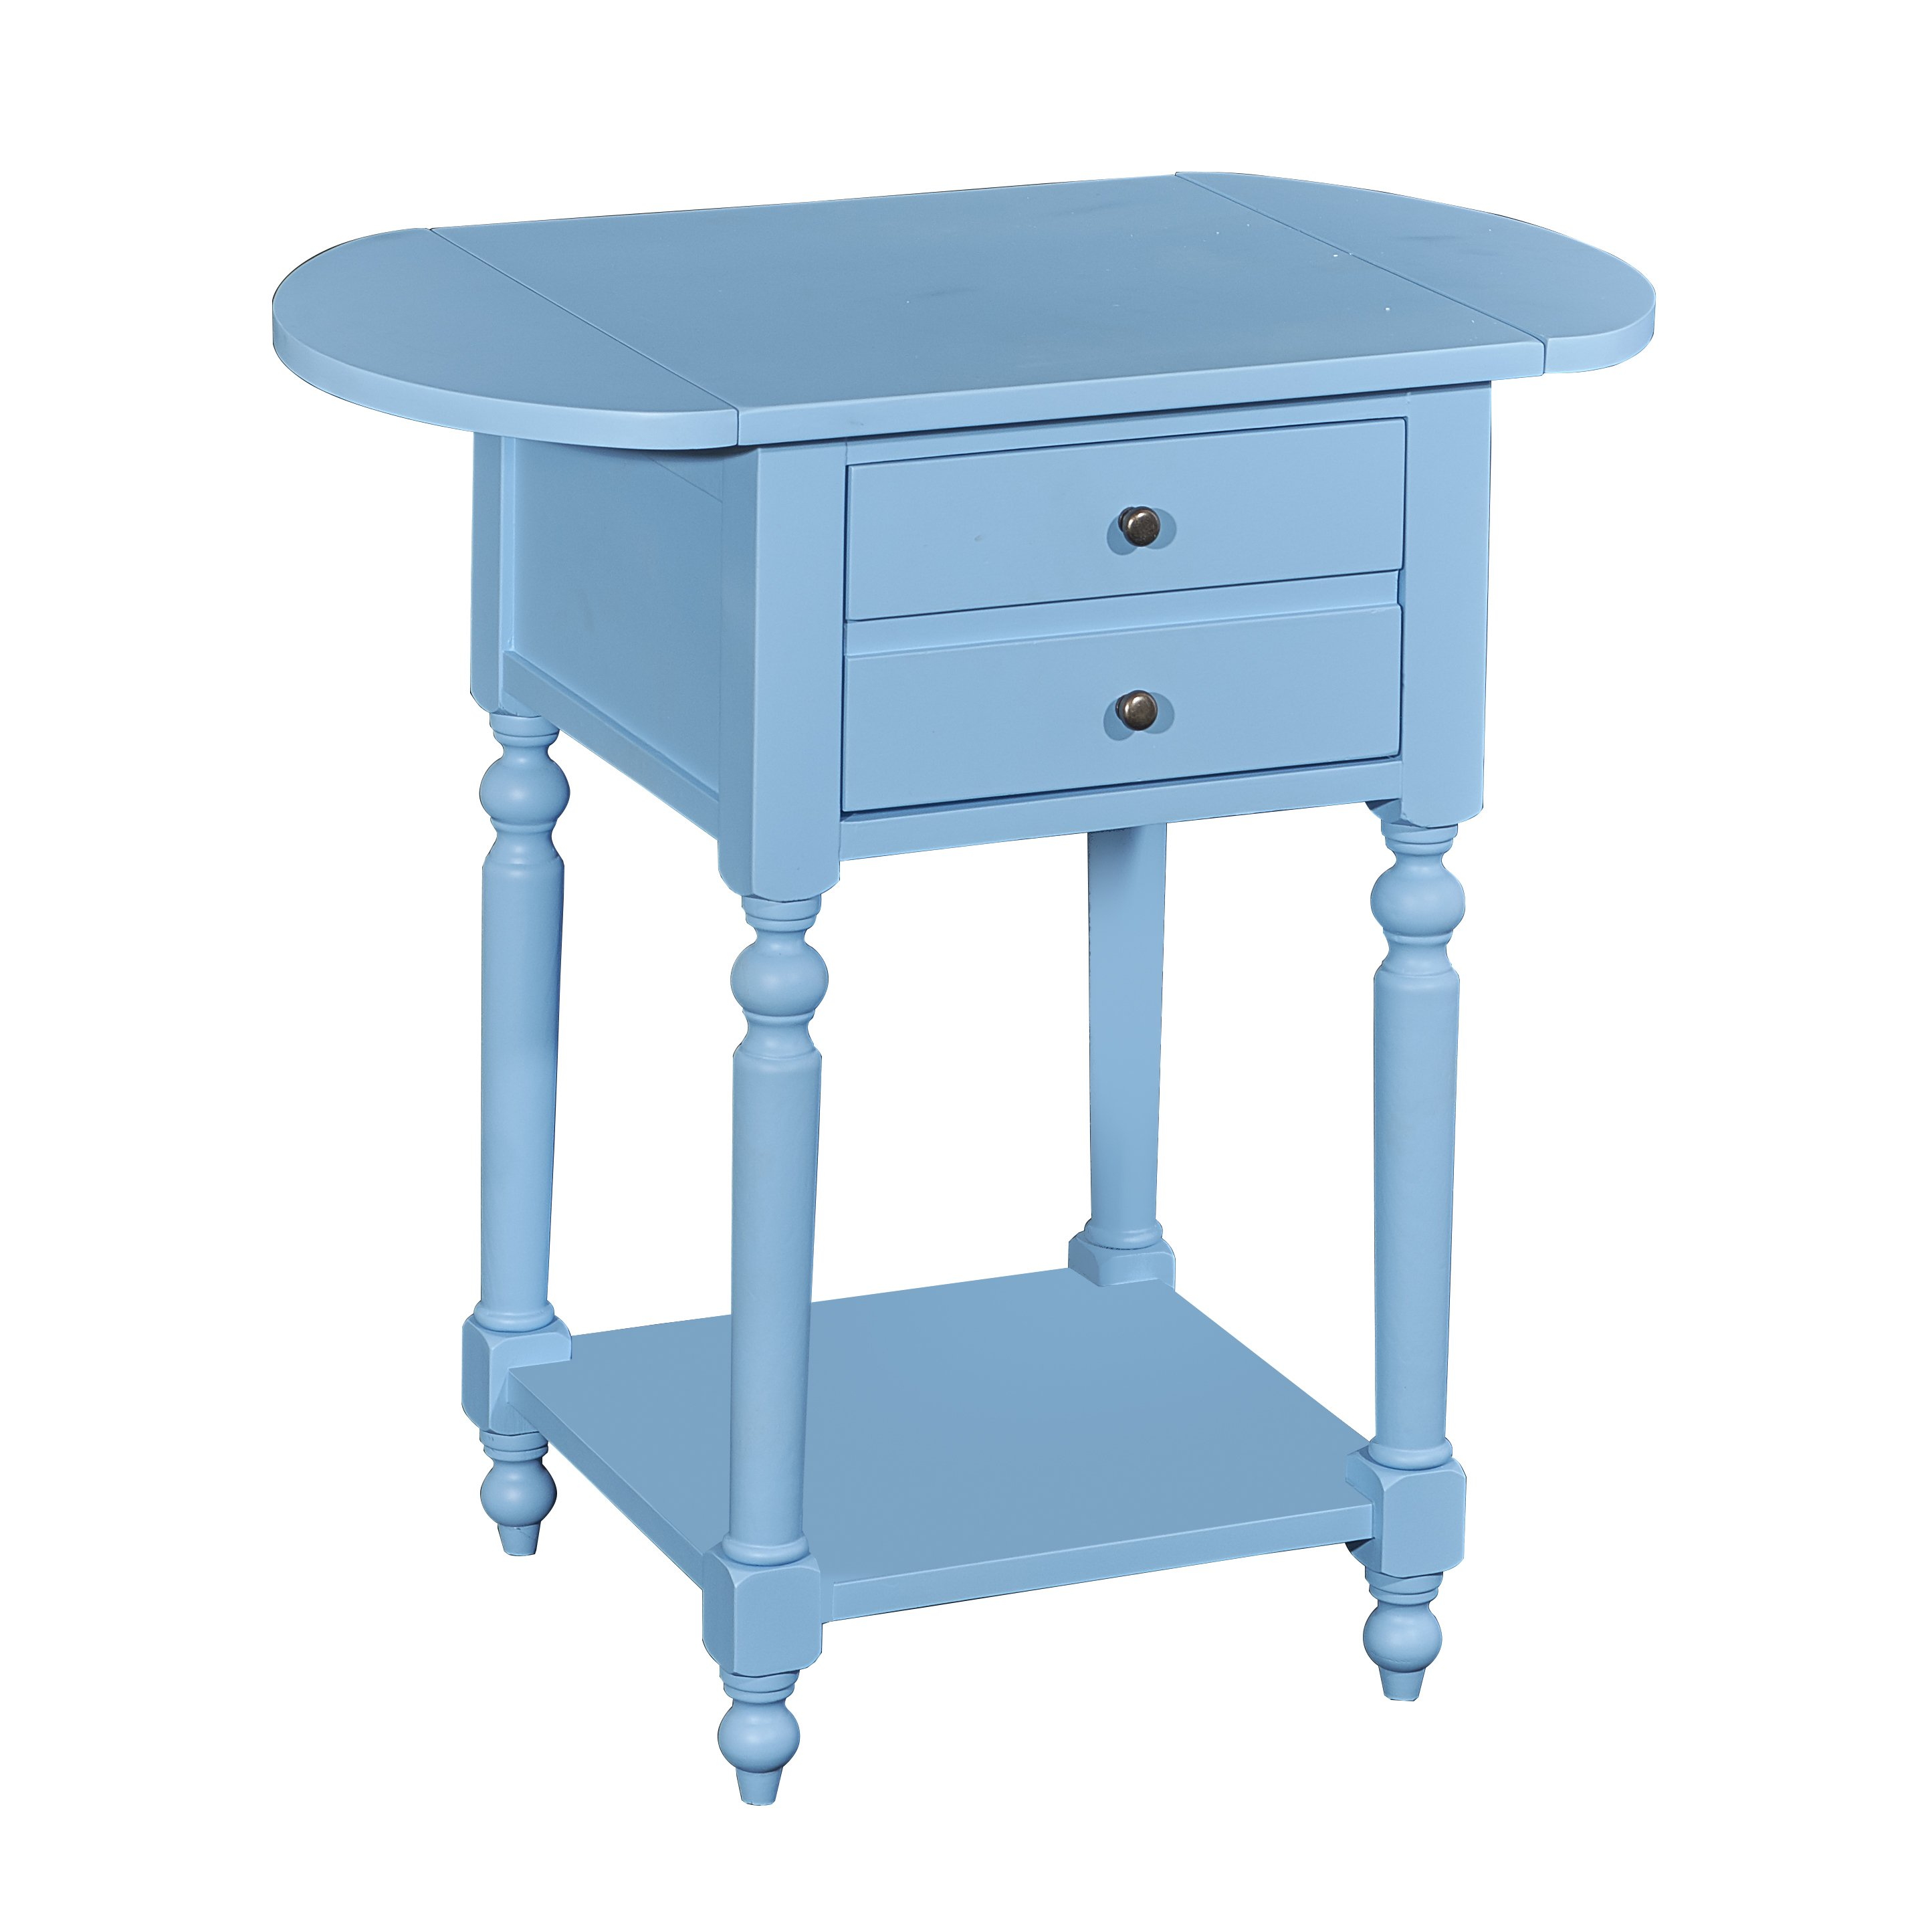 shiloh ocean blue accent table with dropleaf free shipping today drop leaf dining room chairs teal end white trunk coffee tables under gaming dock reclaimed barn door tiffany